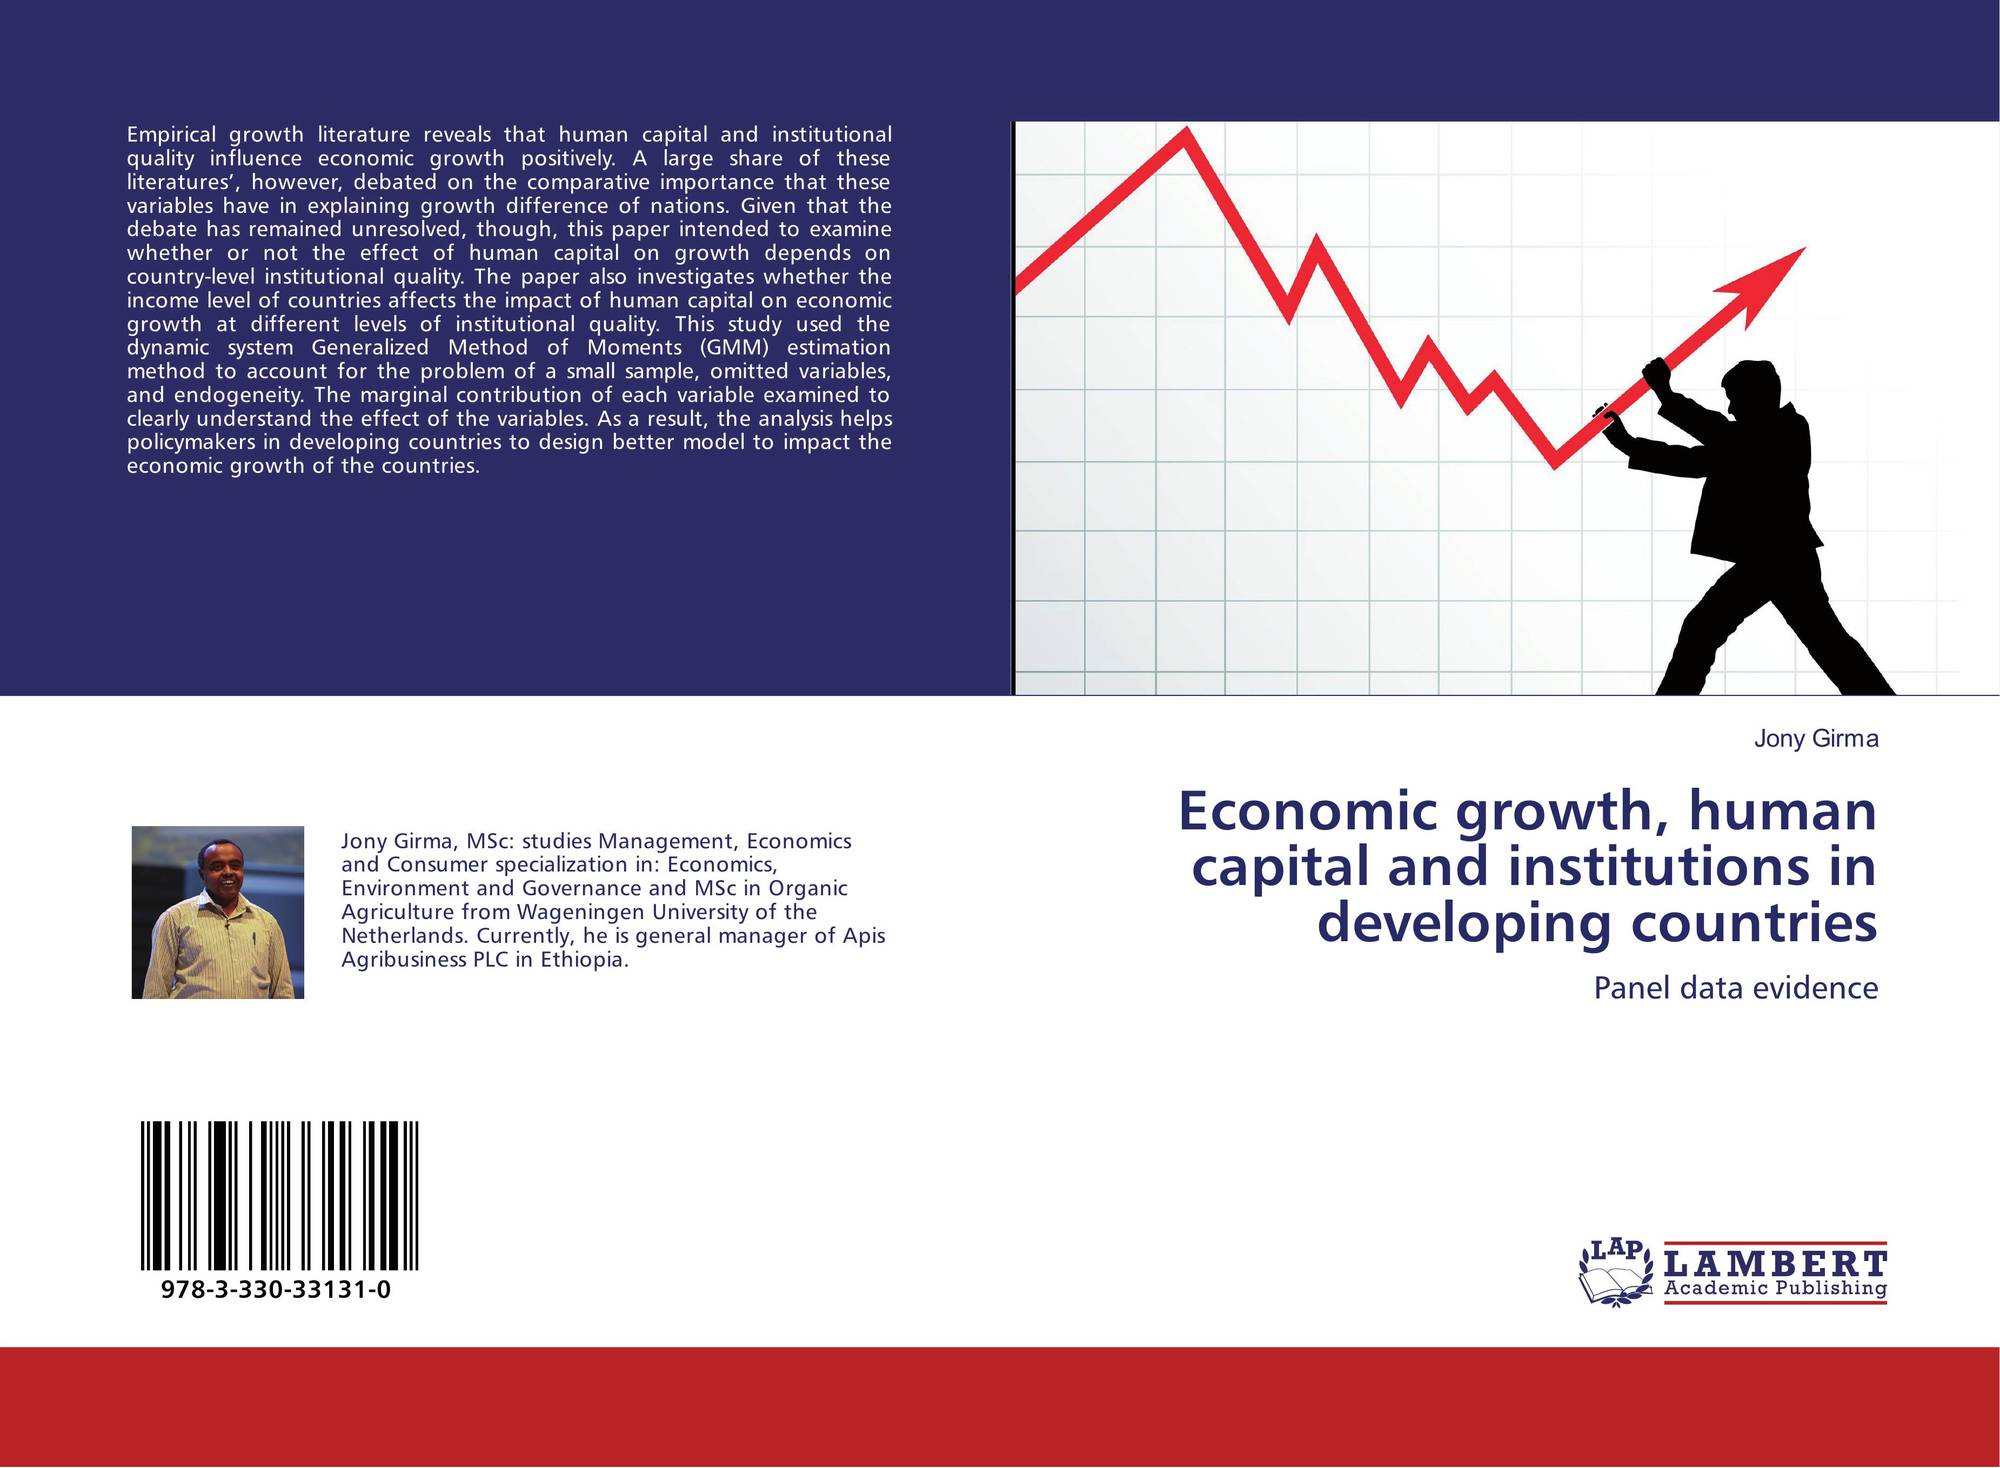 essays in human capital and financial economics Economic growth is defined by, among other things, material capital formation, human capital formation and the creation of innovation put another way, economic growth is determined by the amounts and types of capital and labor that are invested, and how they are utilized for production.